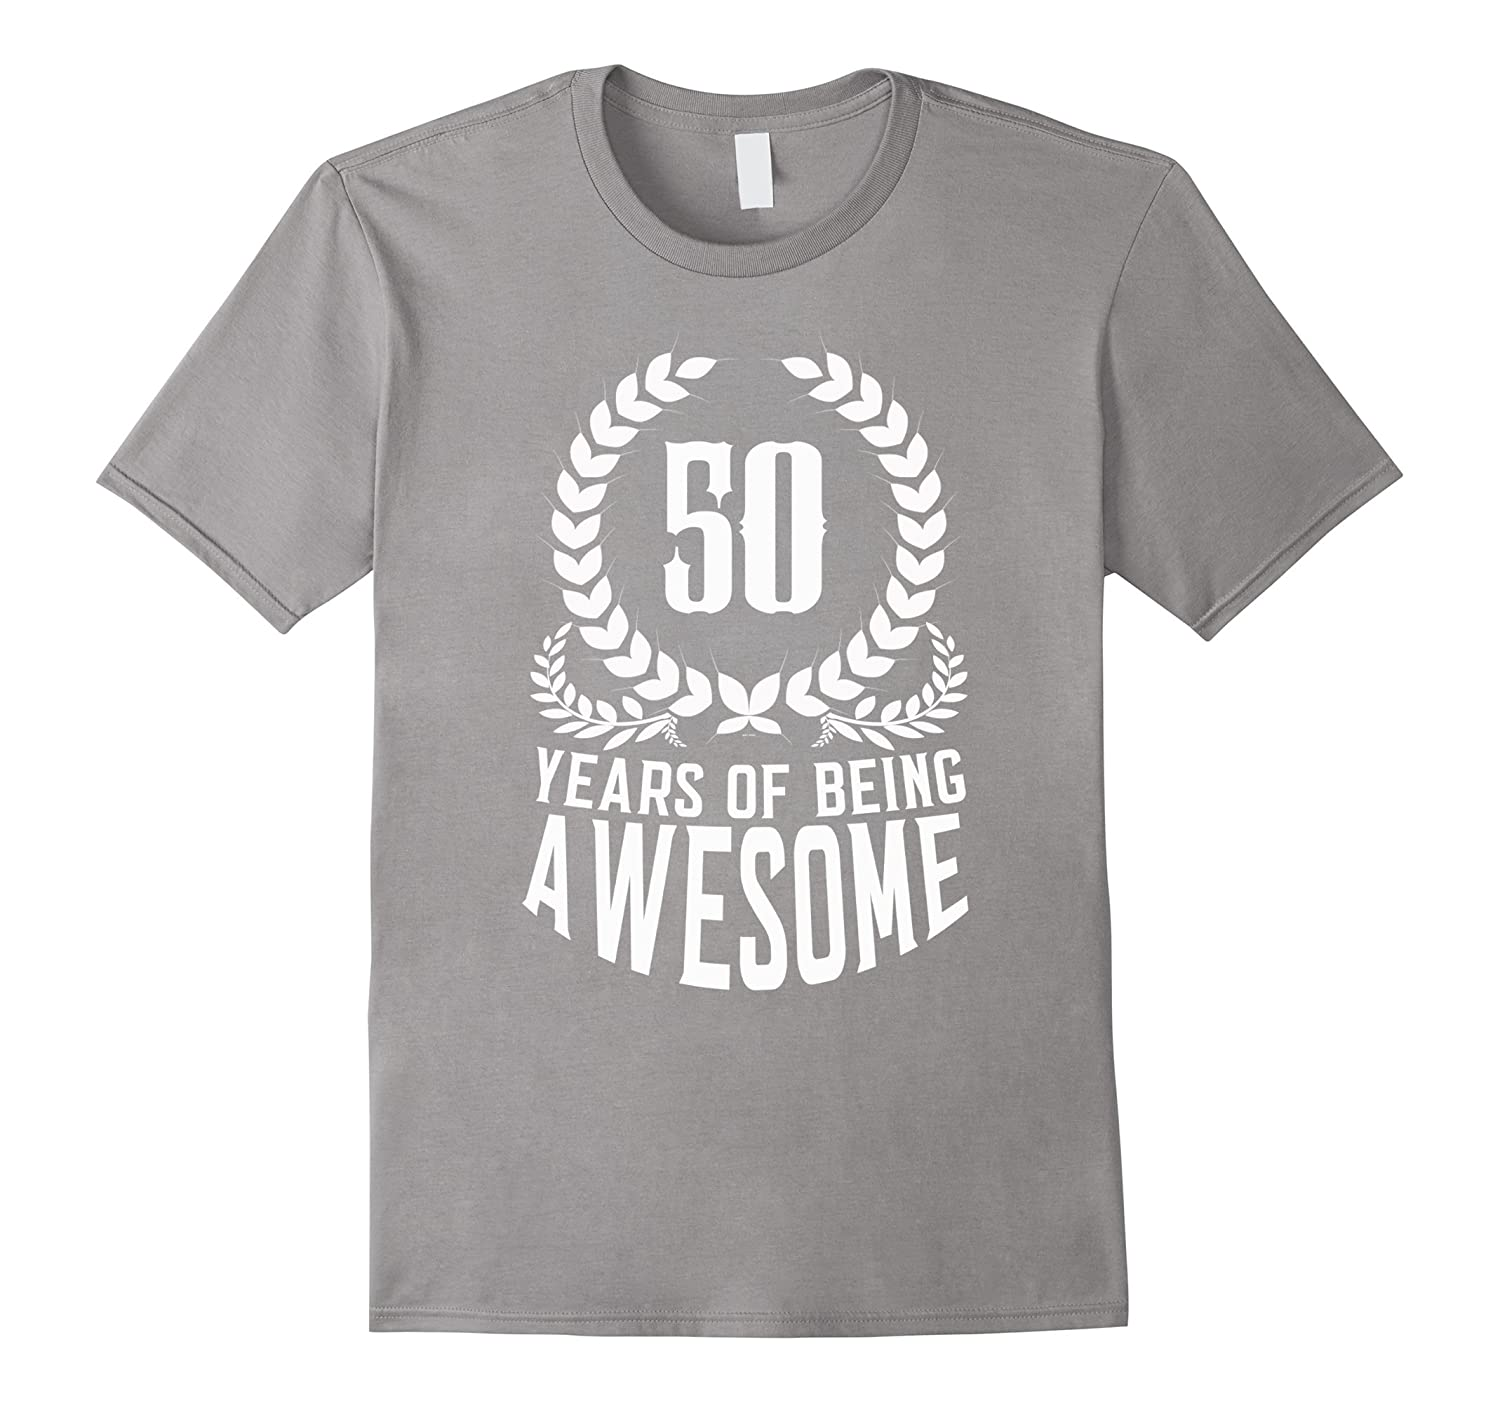 50 years of being awesome 1967 birthday gifts for woman men-TD